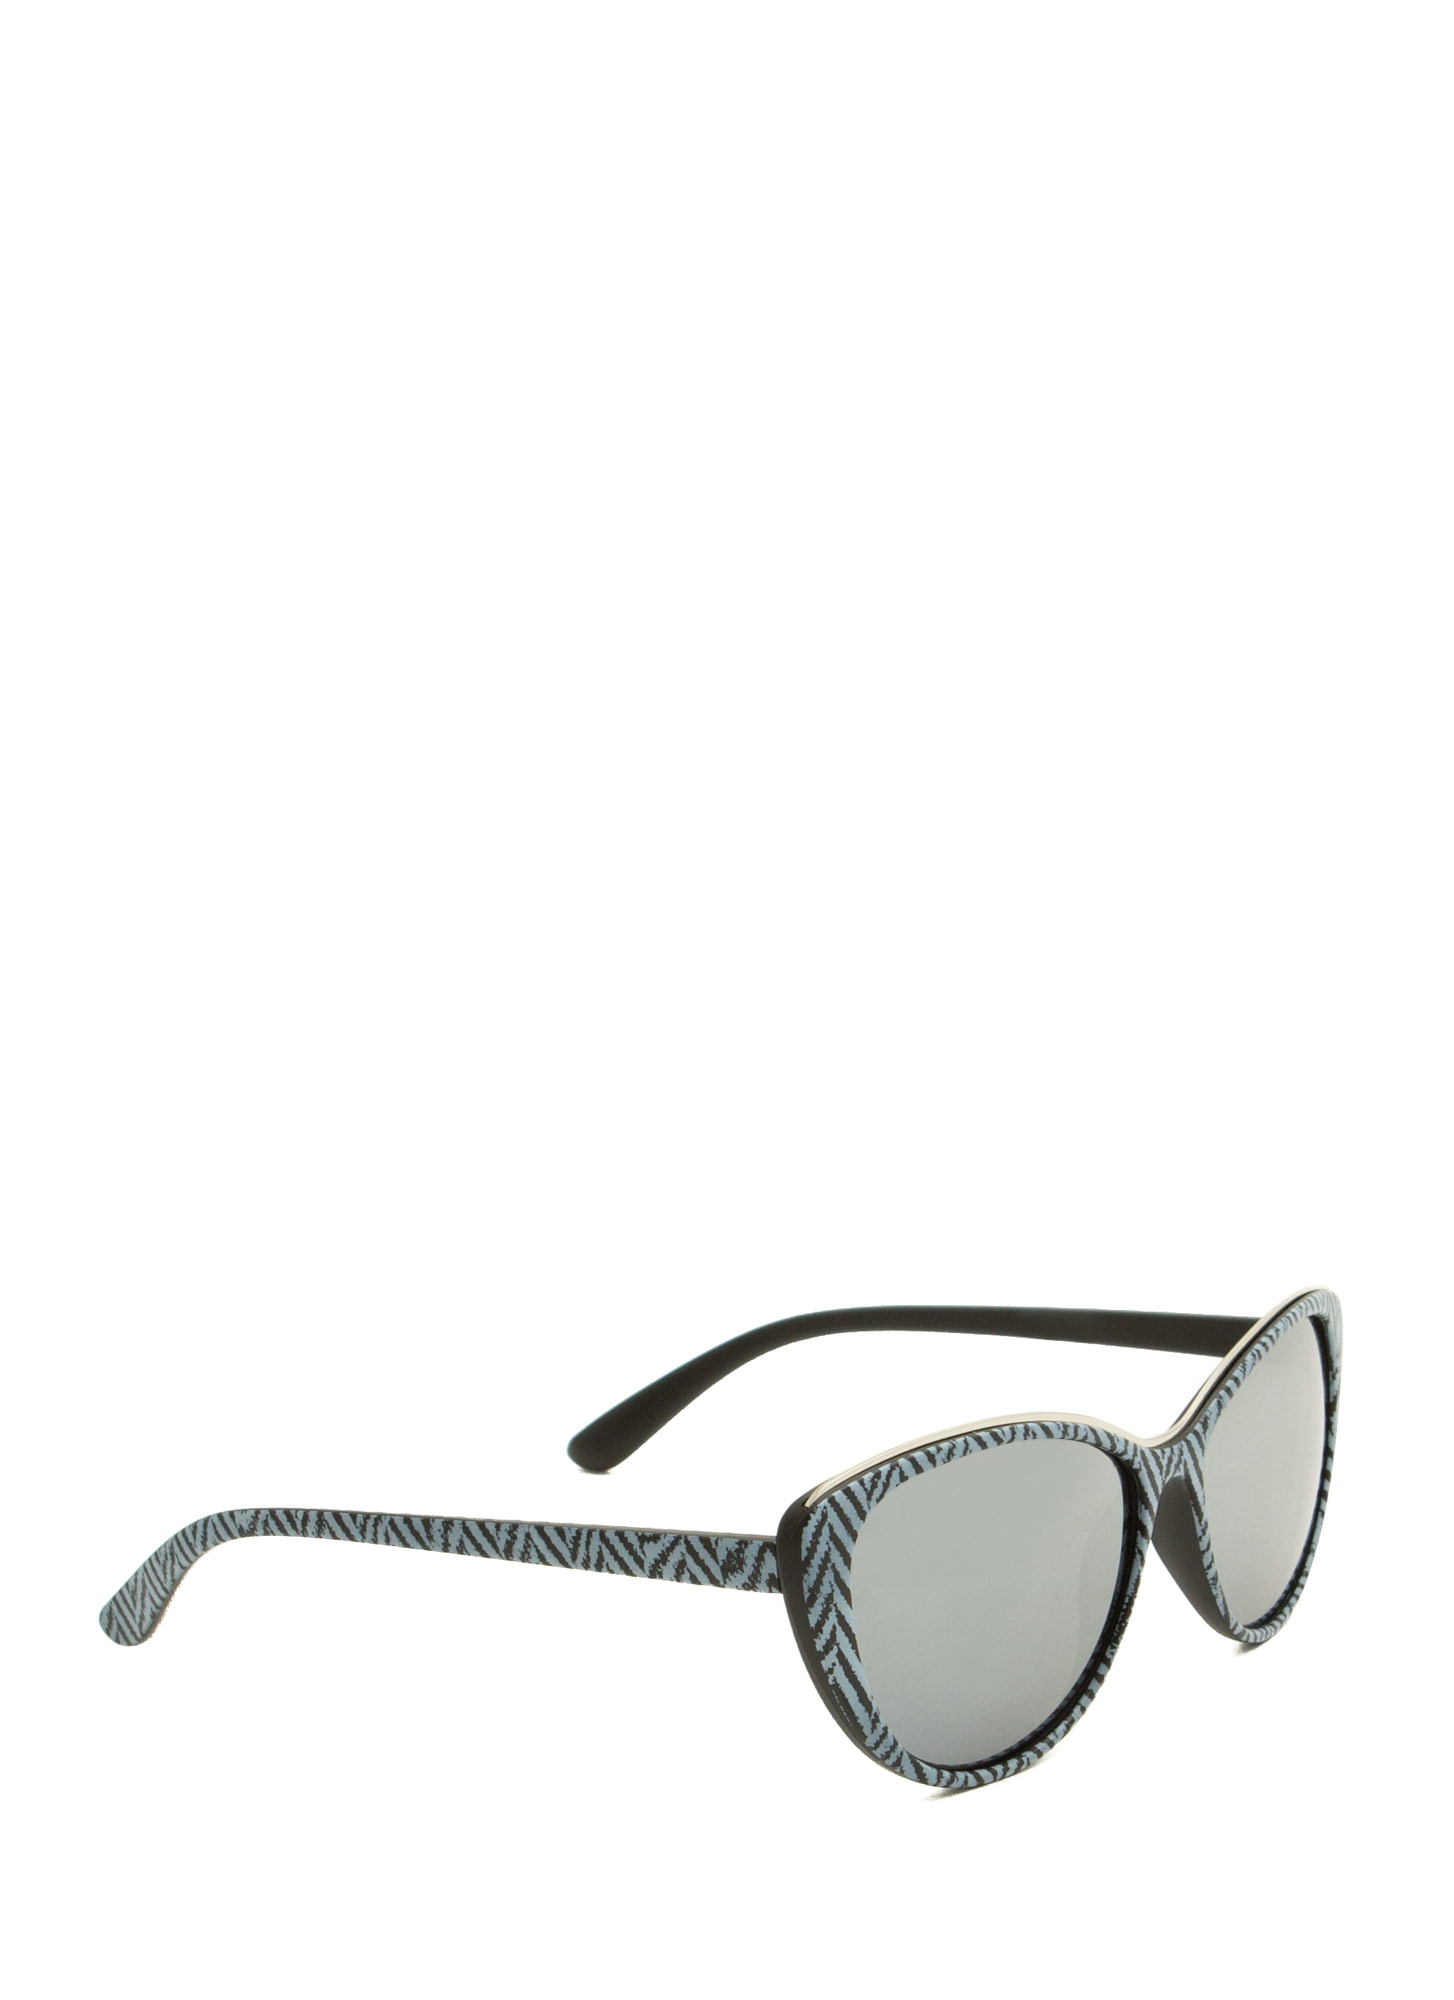 Pattern Play Reflective Sunglasses BLACK